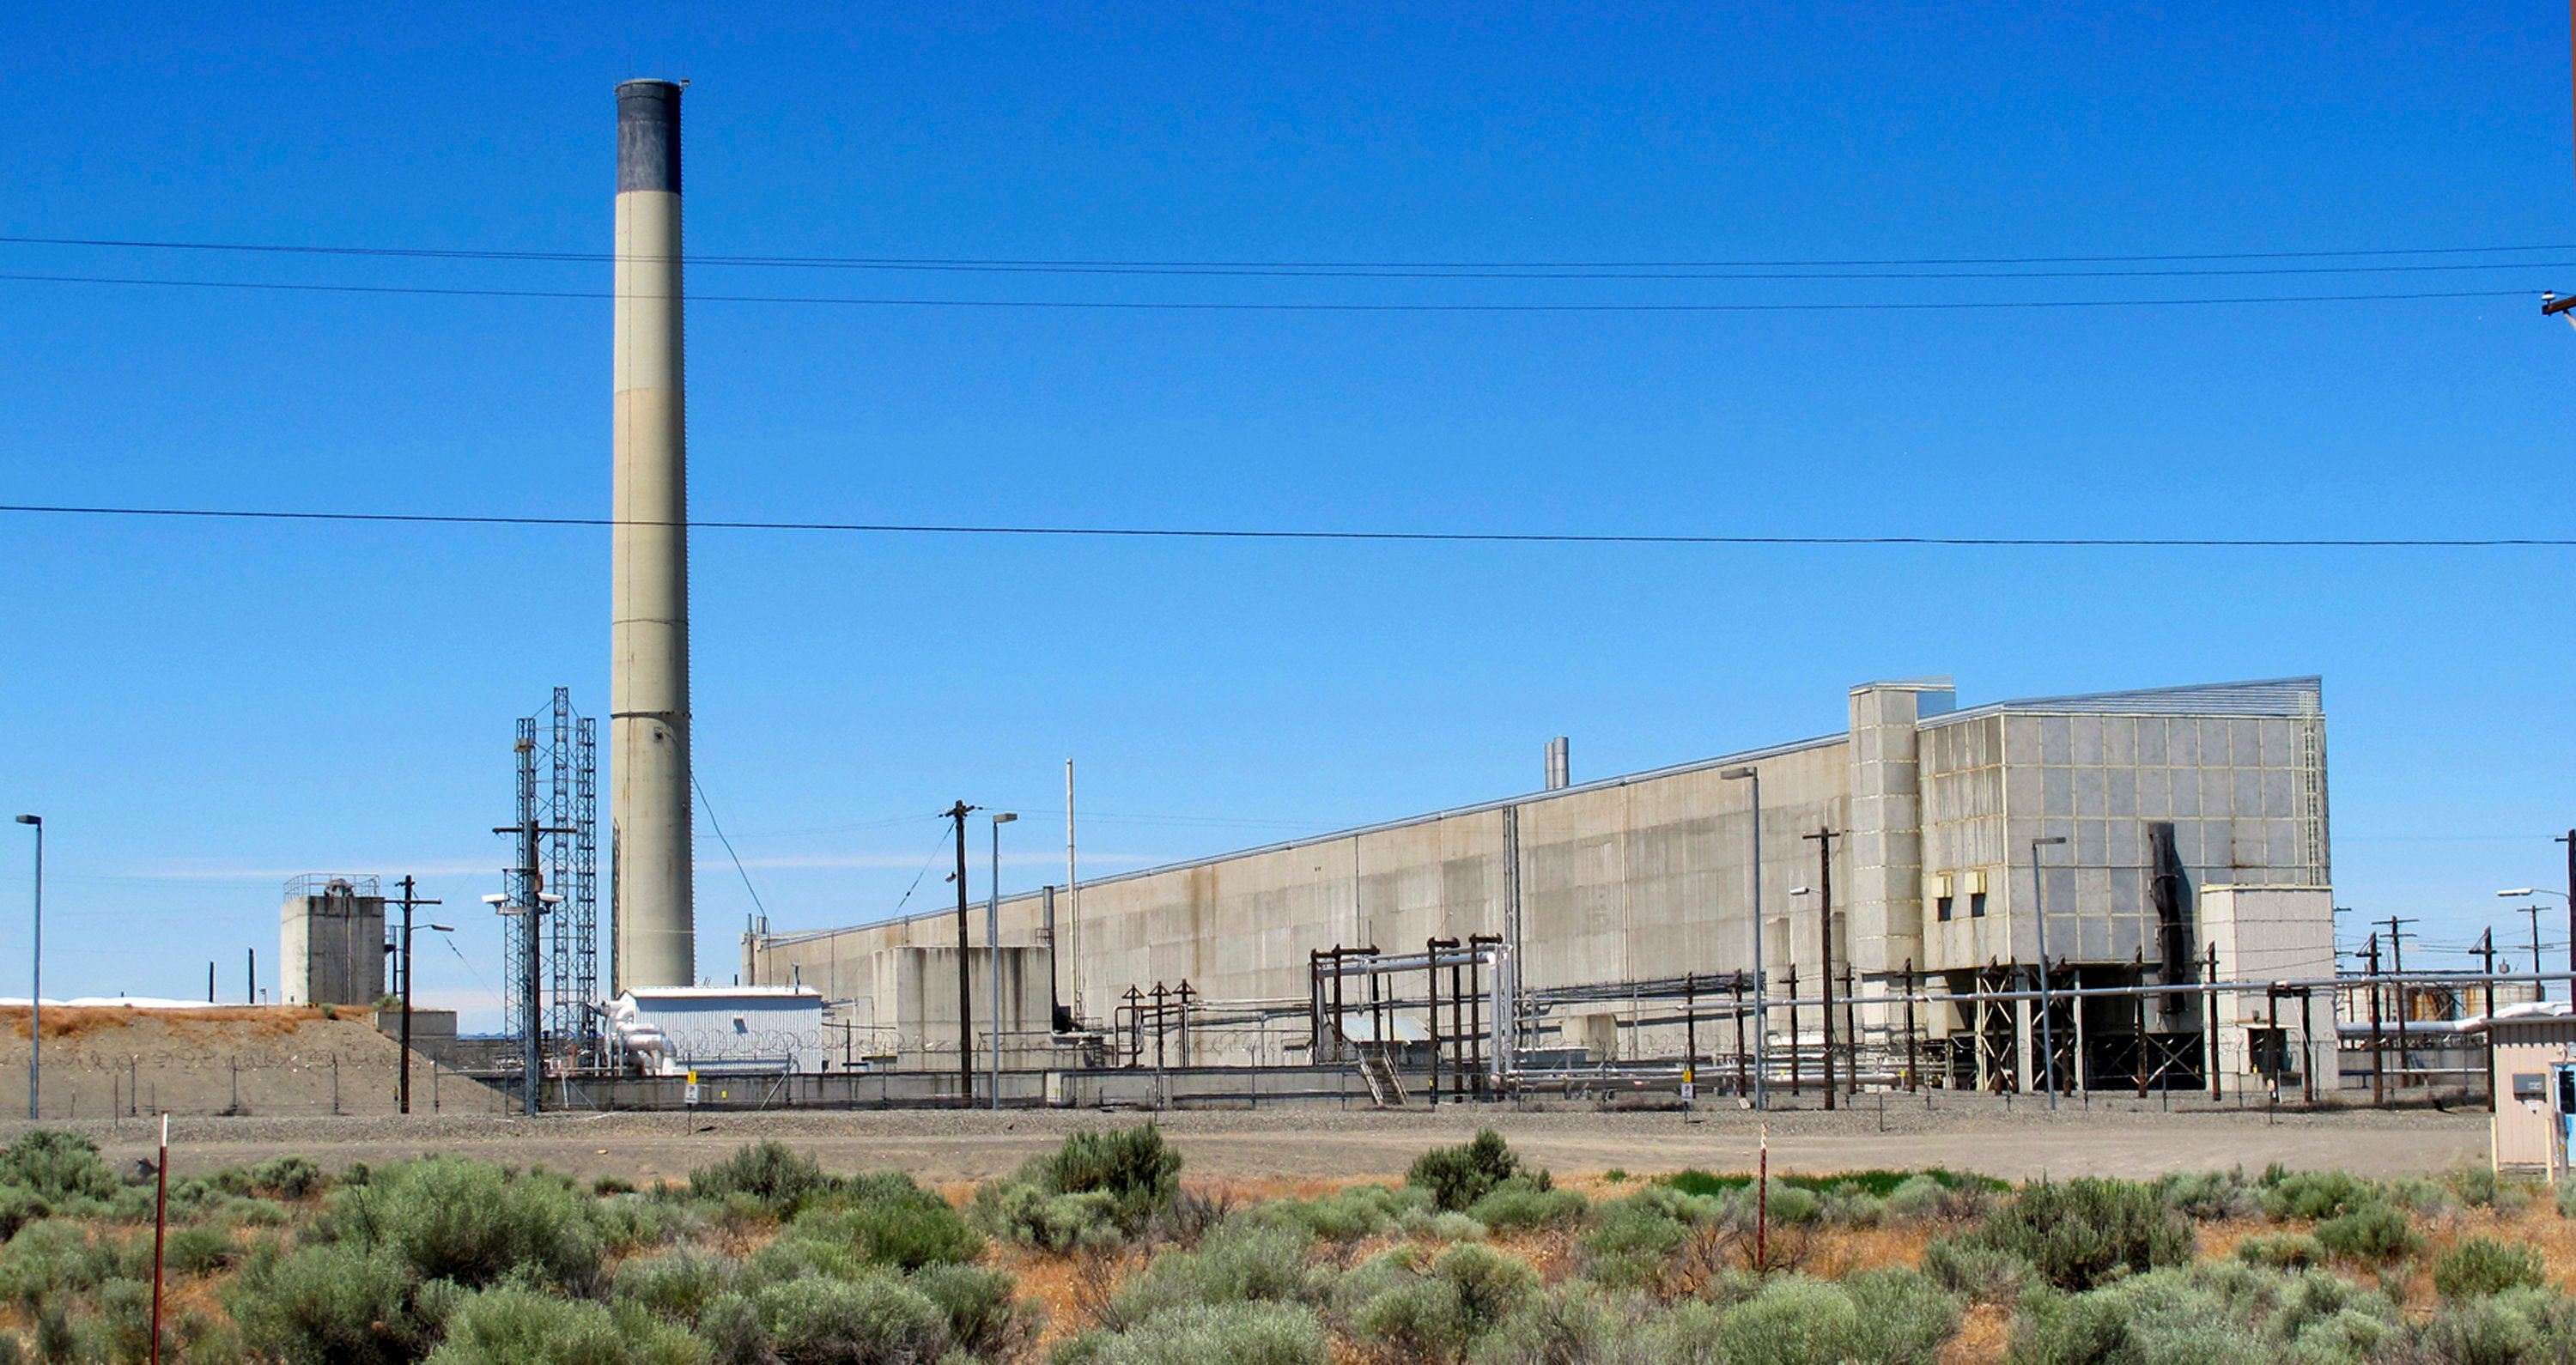 This May 13, 2017 file photo shows the Hanford Nuclear Reservation near Richland, Wash. The state of Washington said Tuesday,